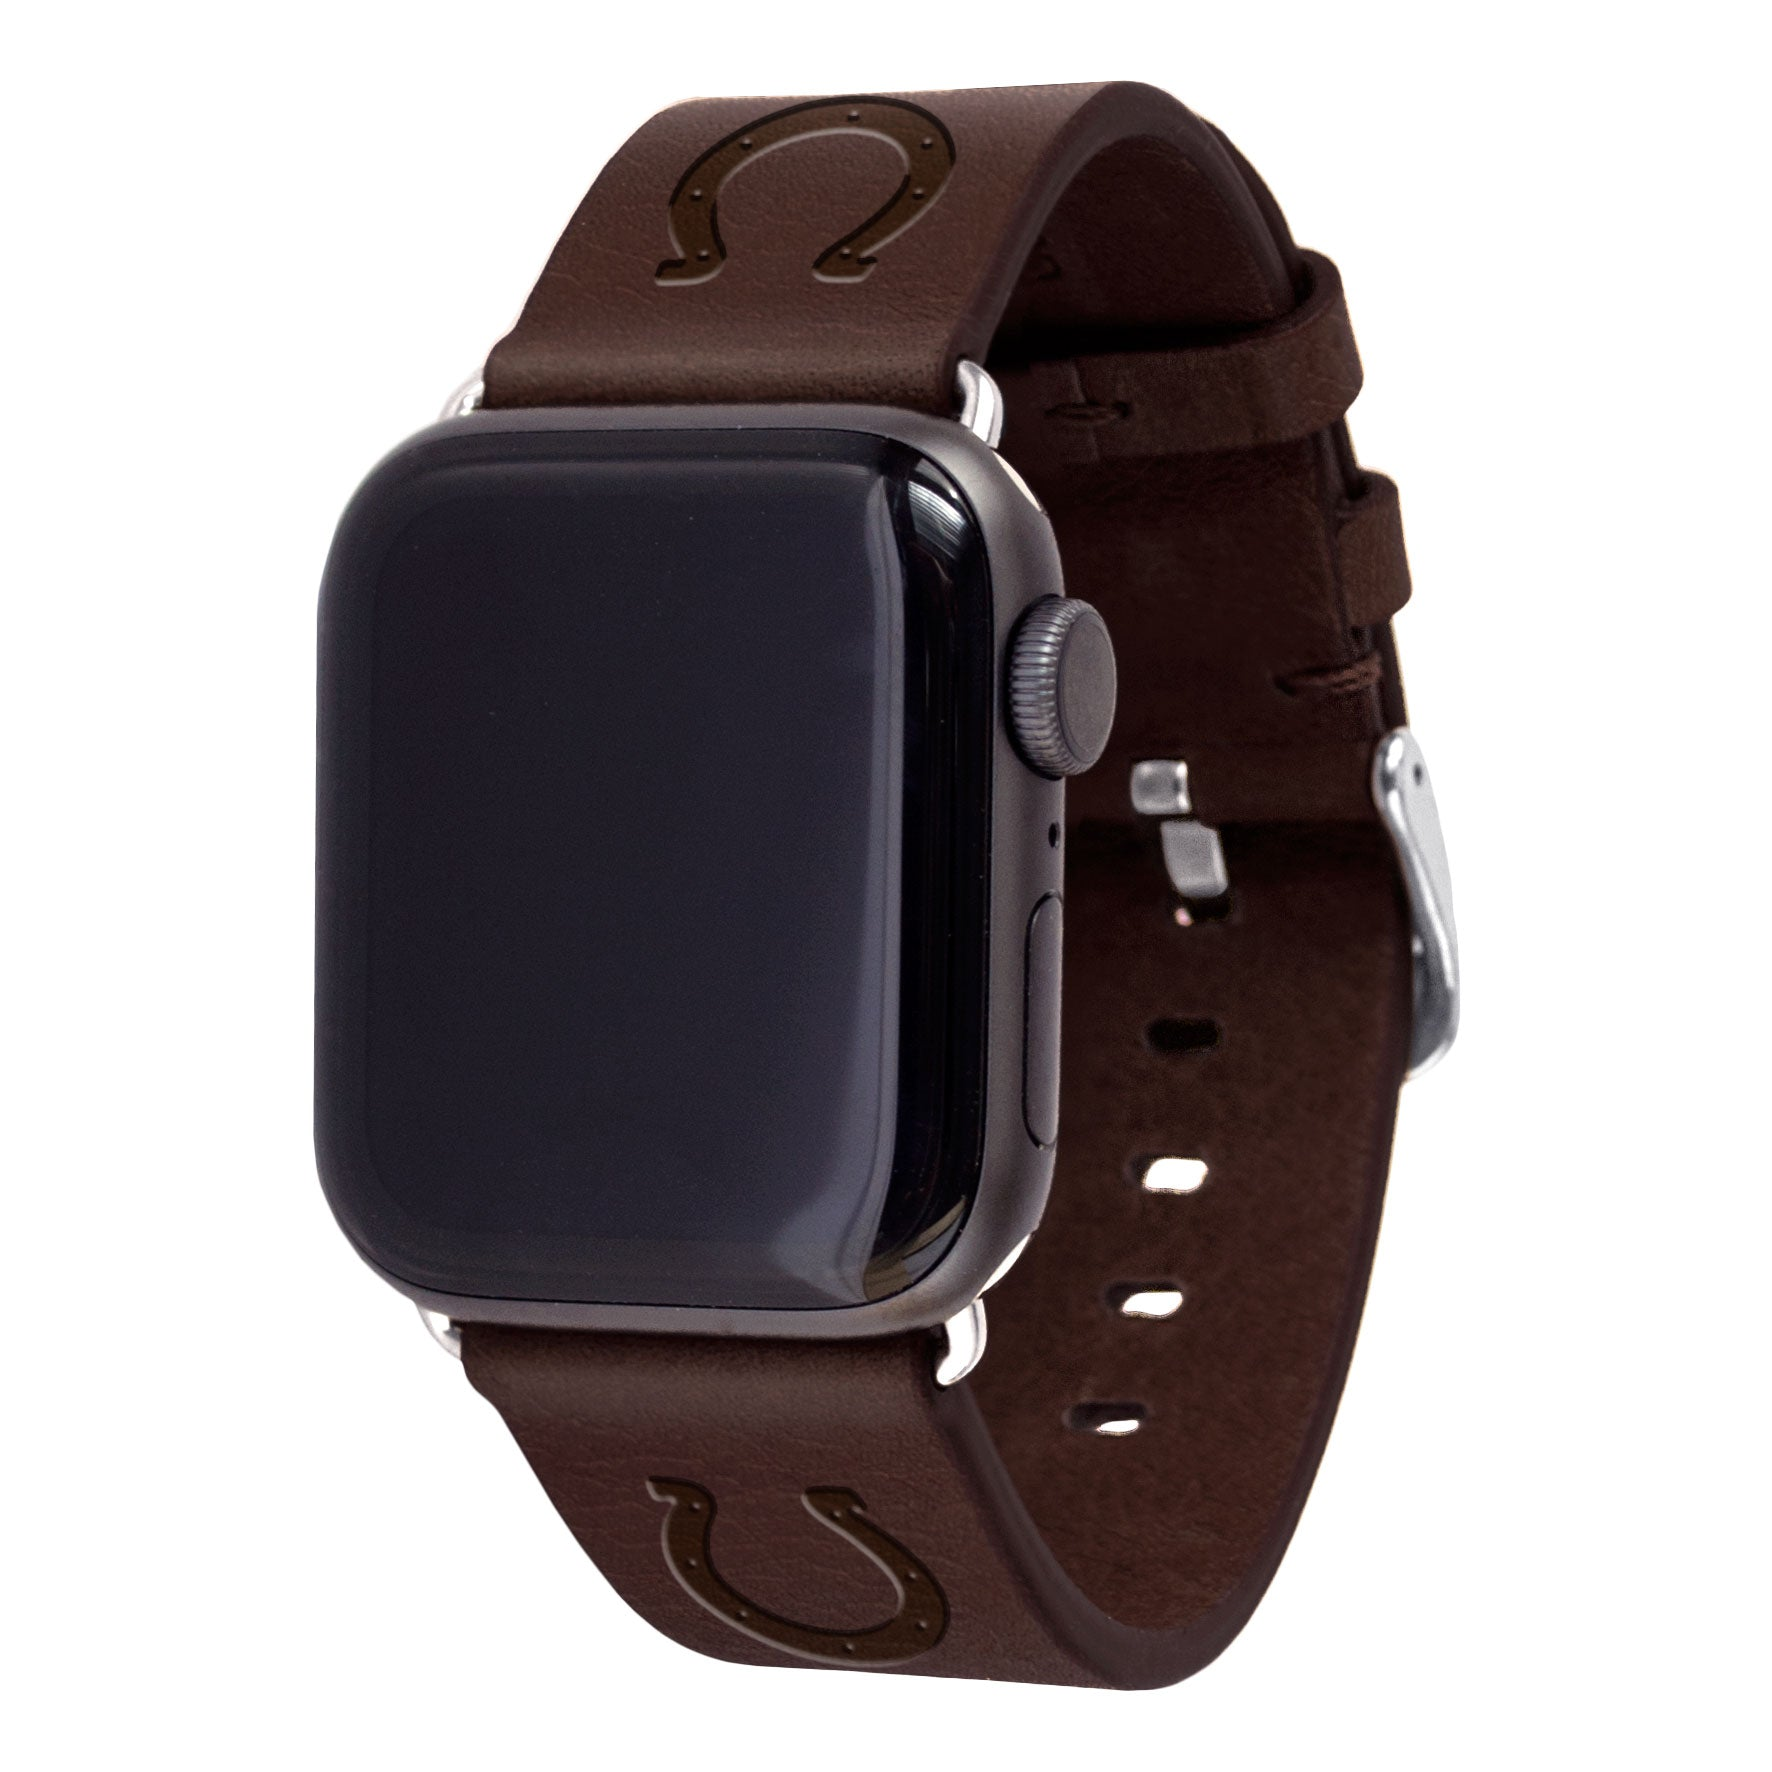 Indianapolis Colts Leather Apple Watch Band - AffinityBands